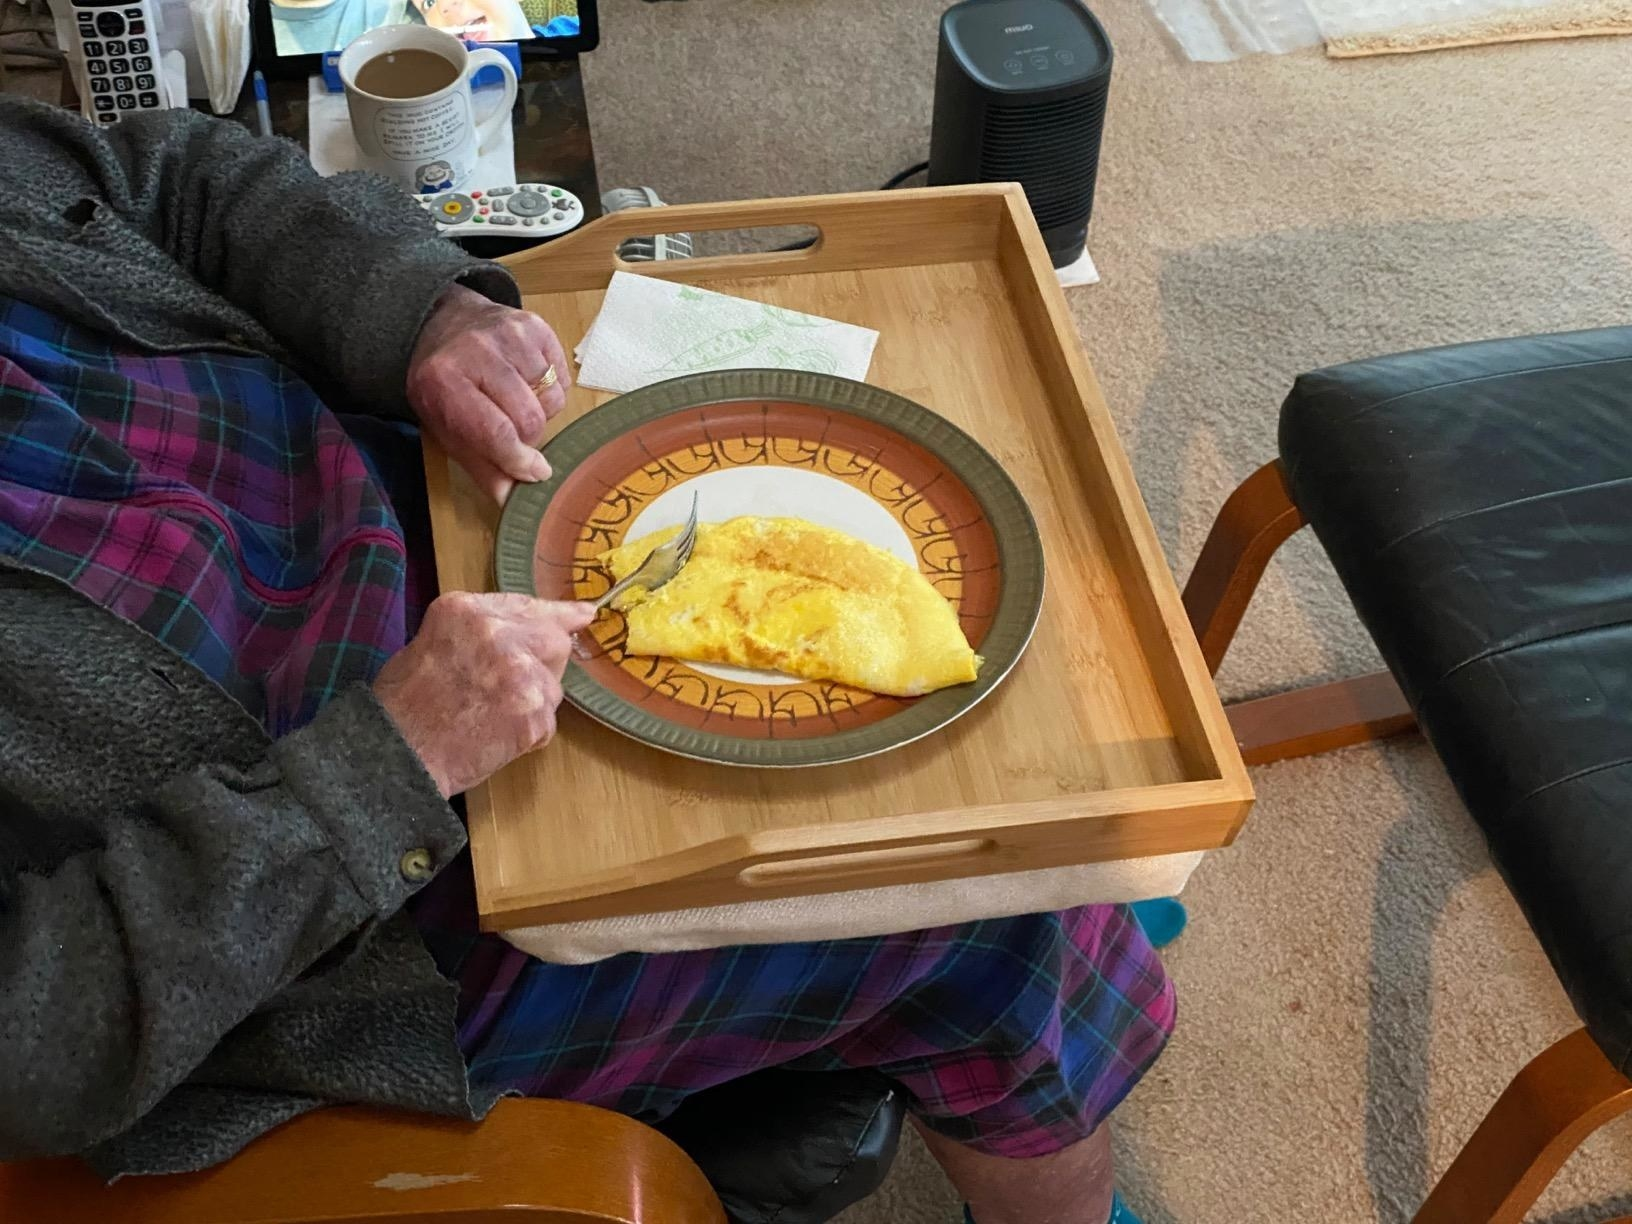 reviewer image of someone eating an omelet from the bamboo Rossie Home Lap Tray